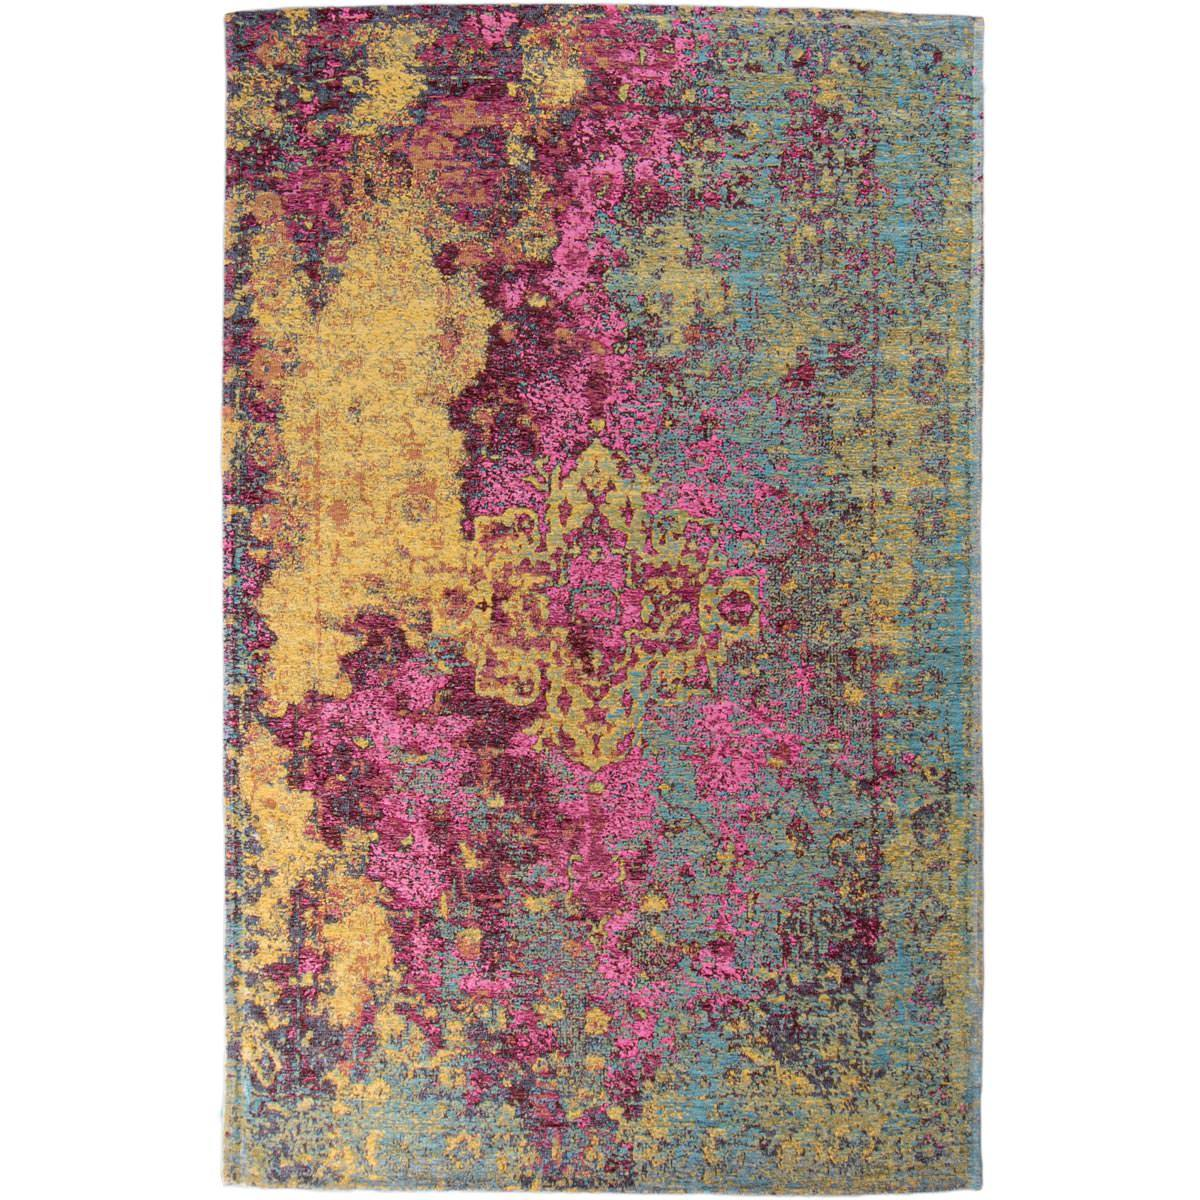 Marseille Rug 31 Yellow/Purple/Pink 1